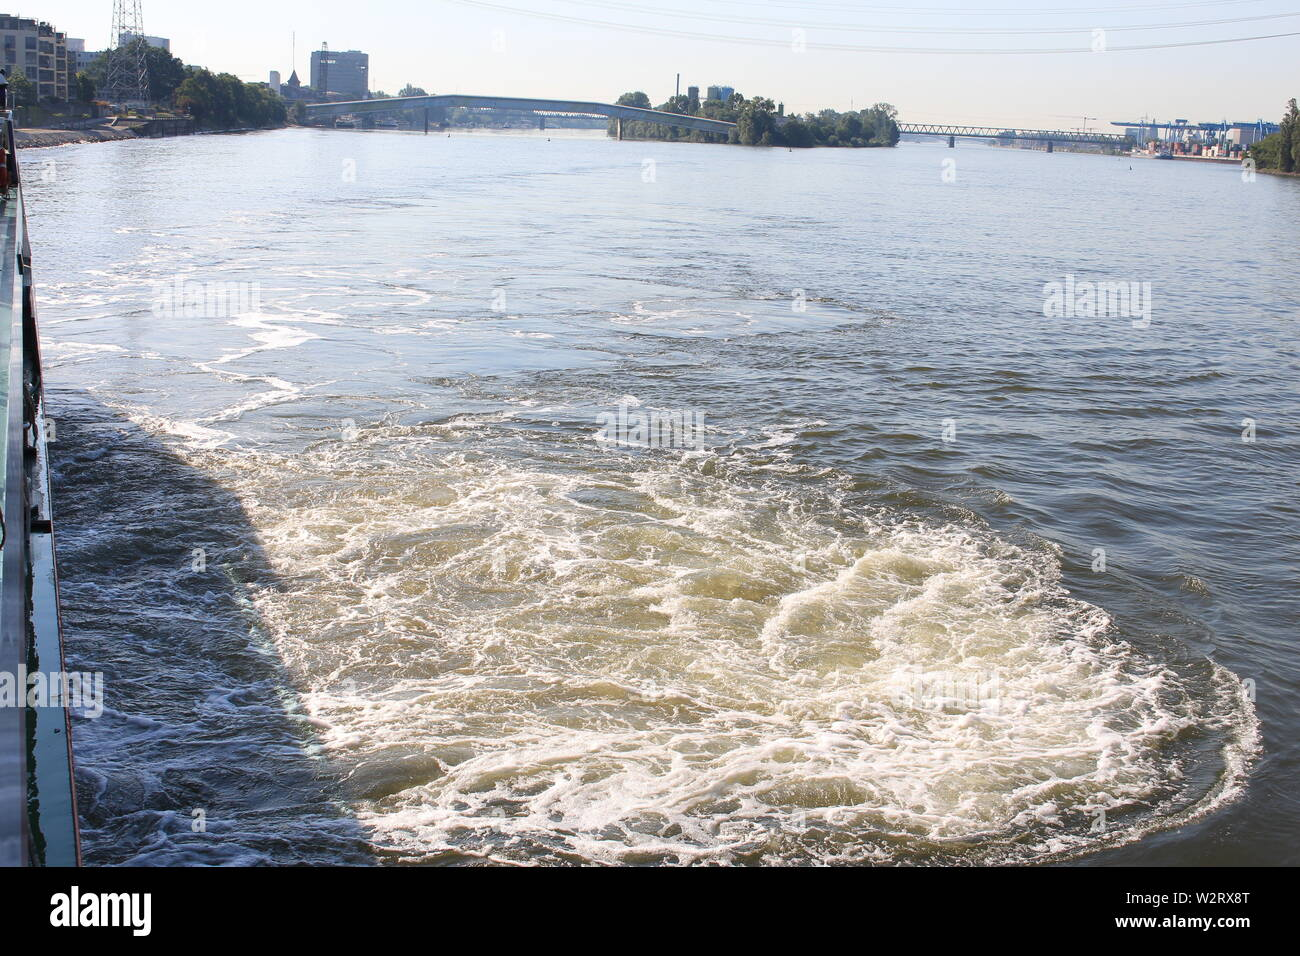 View from the Rhein river in Mainz - Stock Image